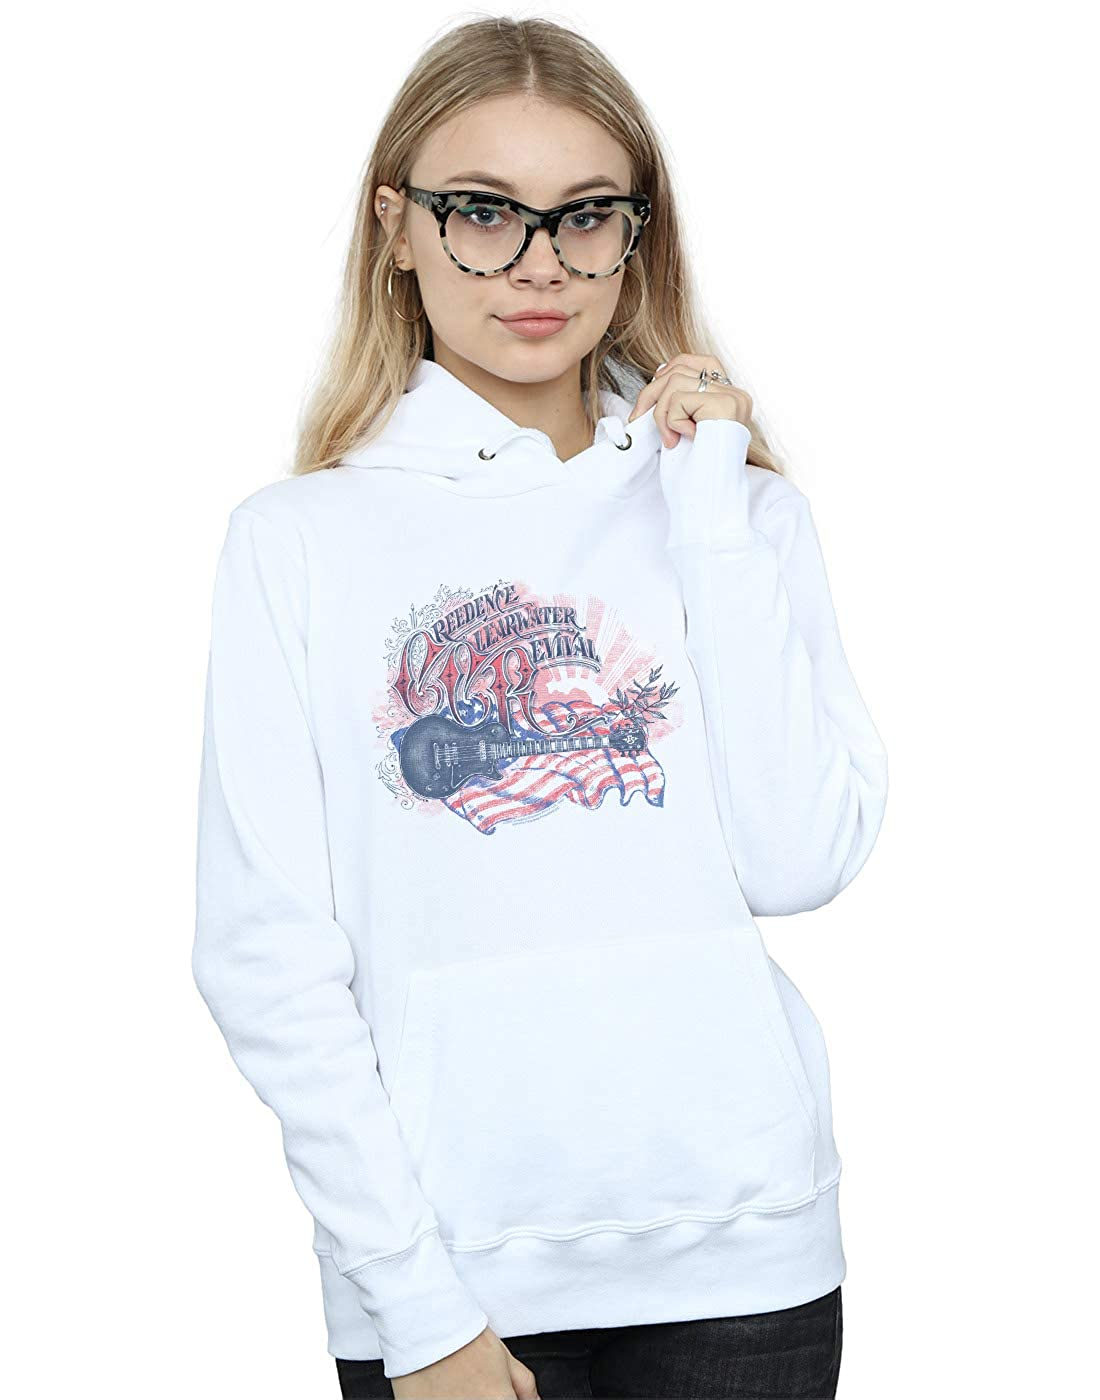 Absolute Cult Creedence Clearwater Revival Womens Guitar Flag Hoodie